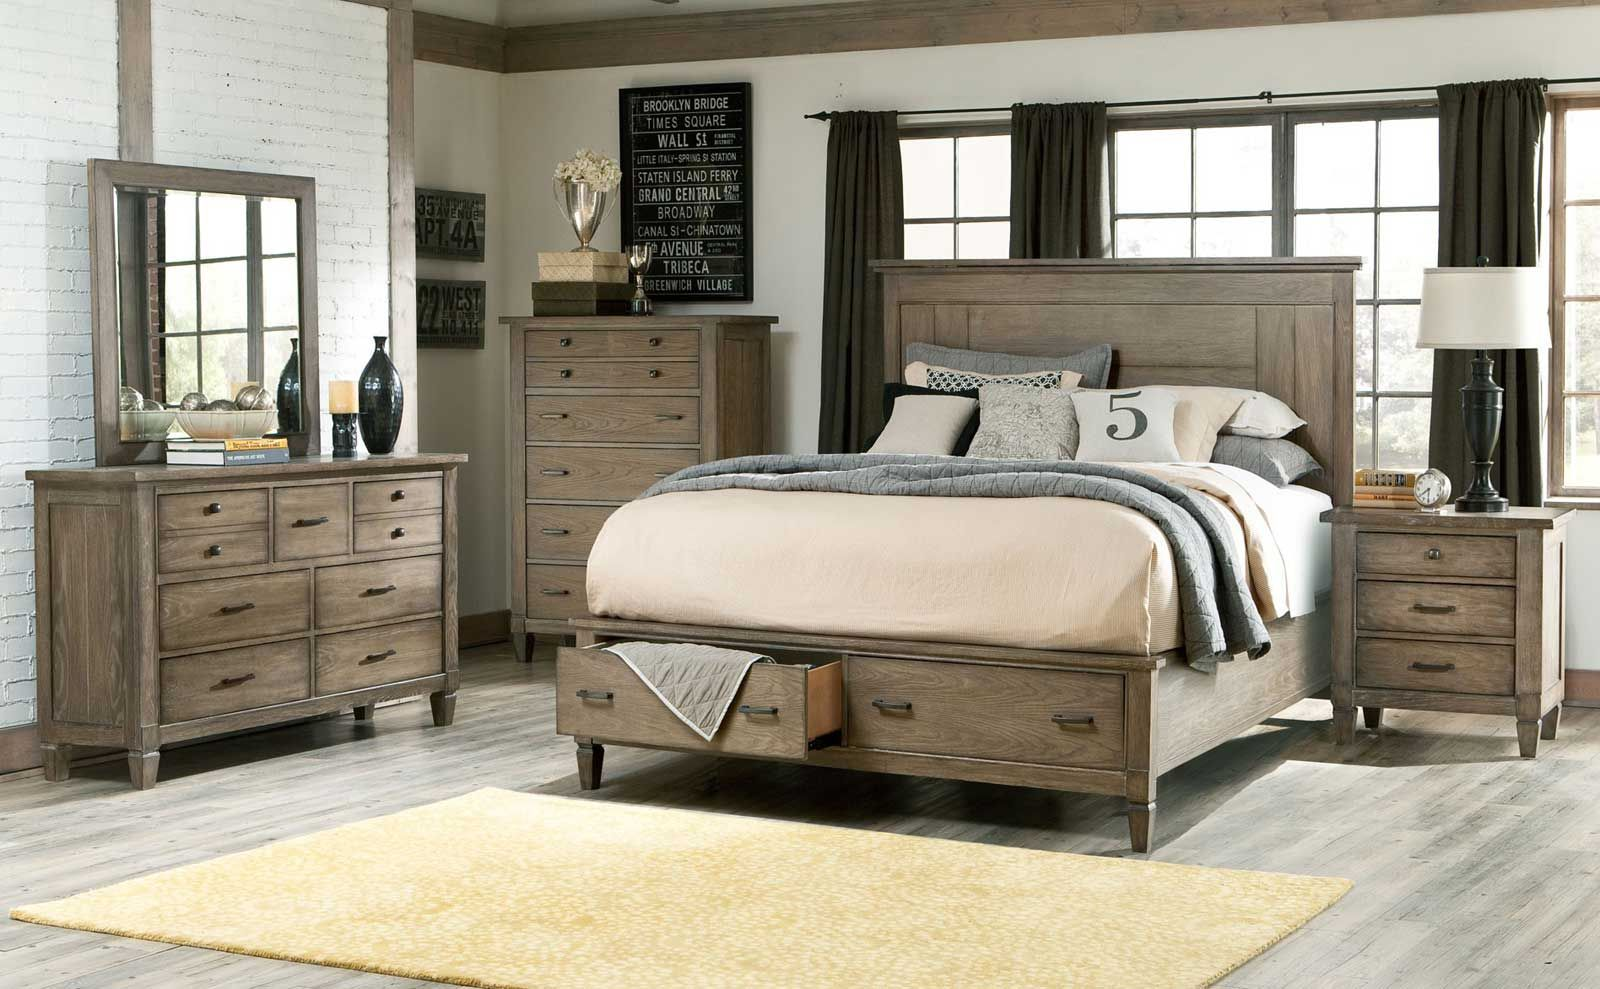 Why You Should Purchase King Bedroom Furniture Sets Designalls In 2020 Rustic Bedroom Furniture Sets Rustic Bedroom Furniture King Size Bedroom Sets